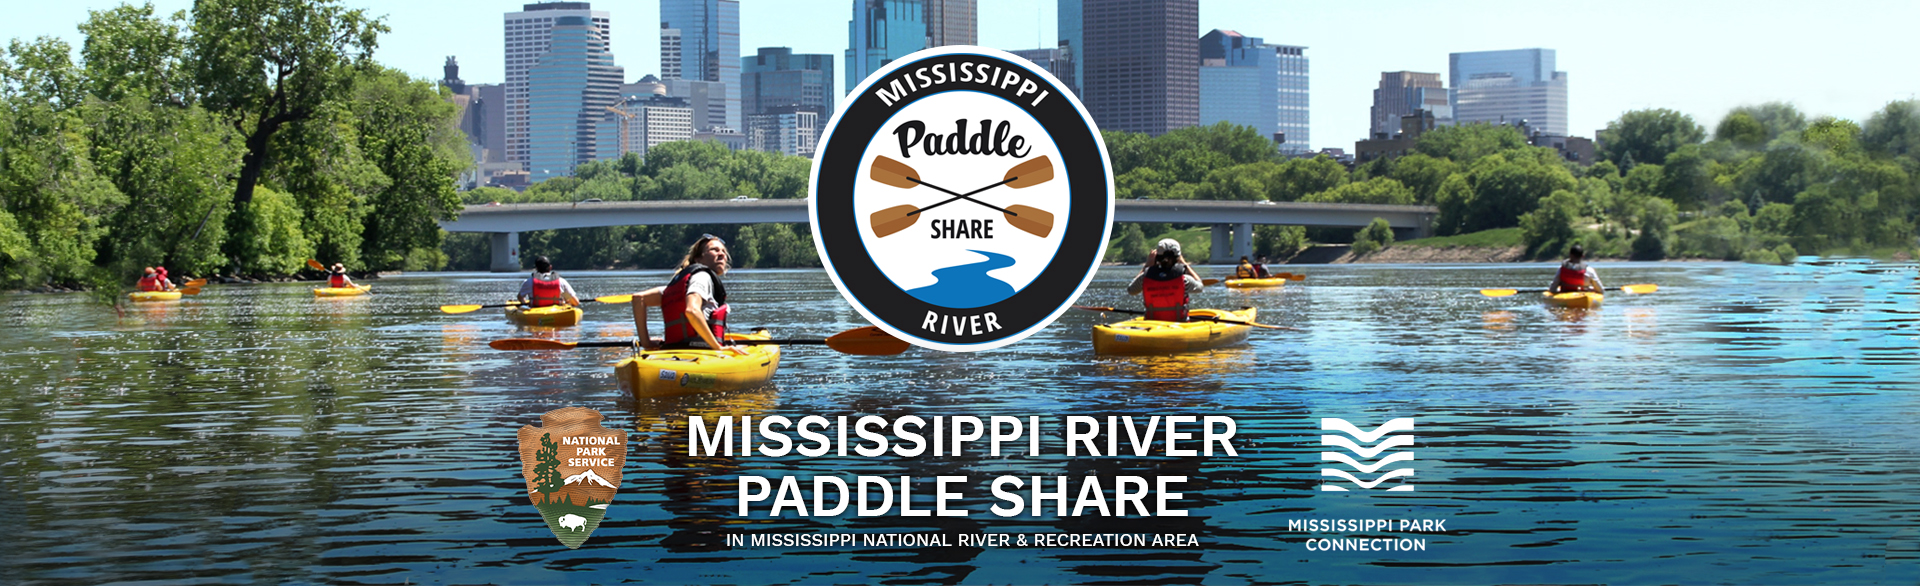 Paddle Share